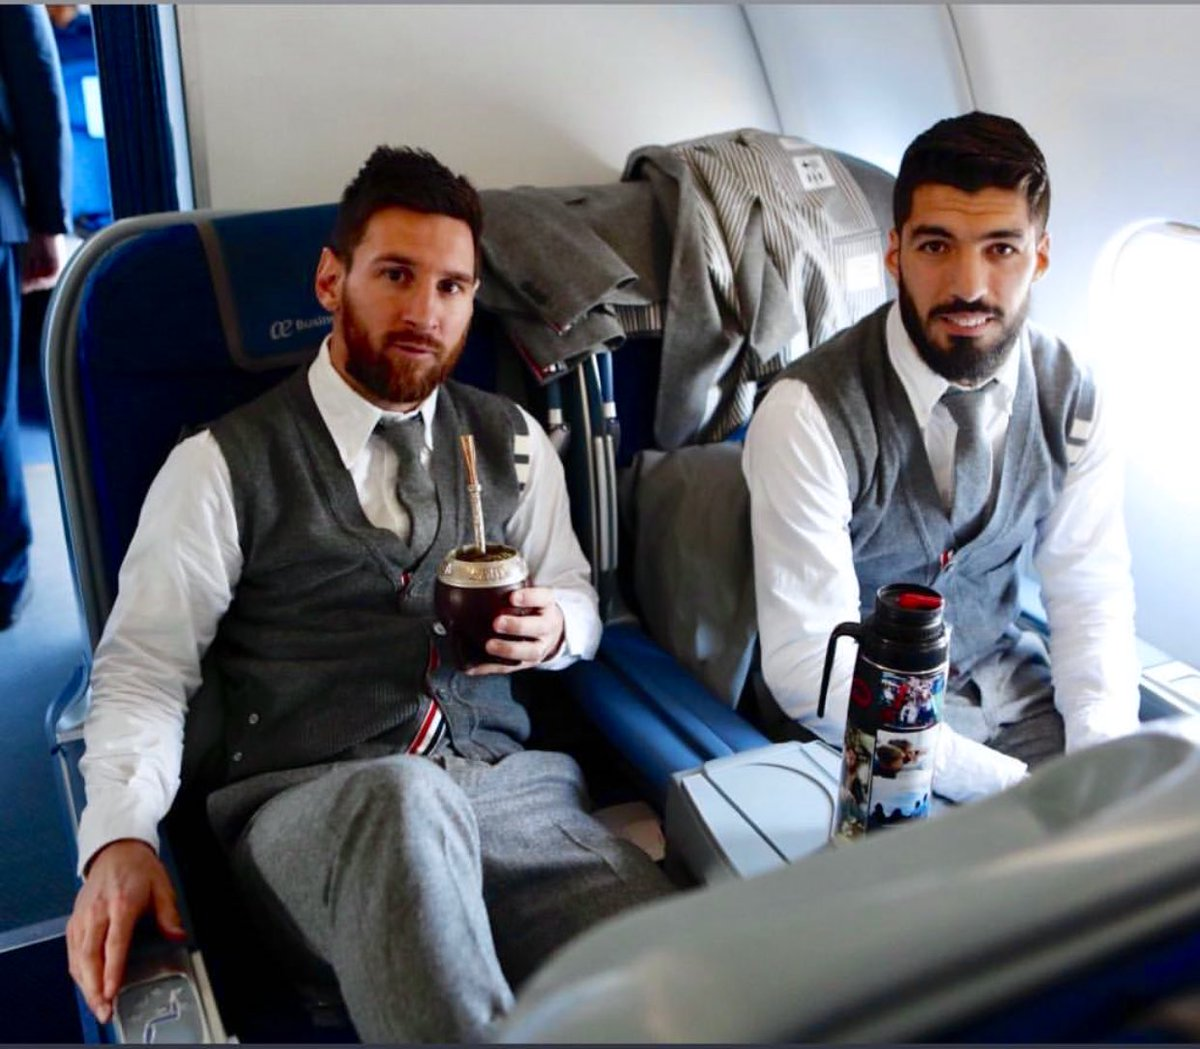 Barca Universal On Twitter Messi And Suarez On Their Way To Liverpool